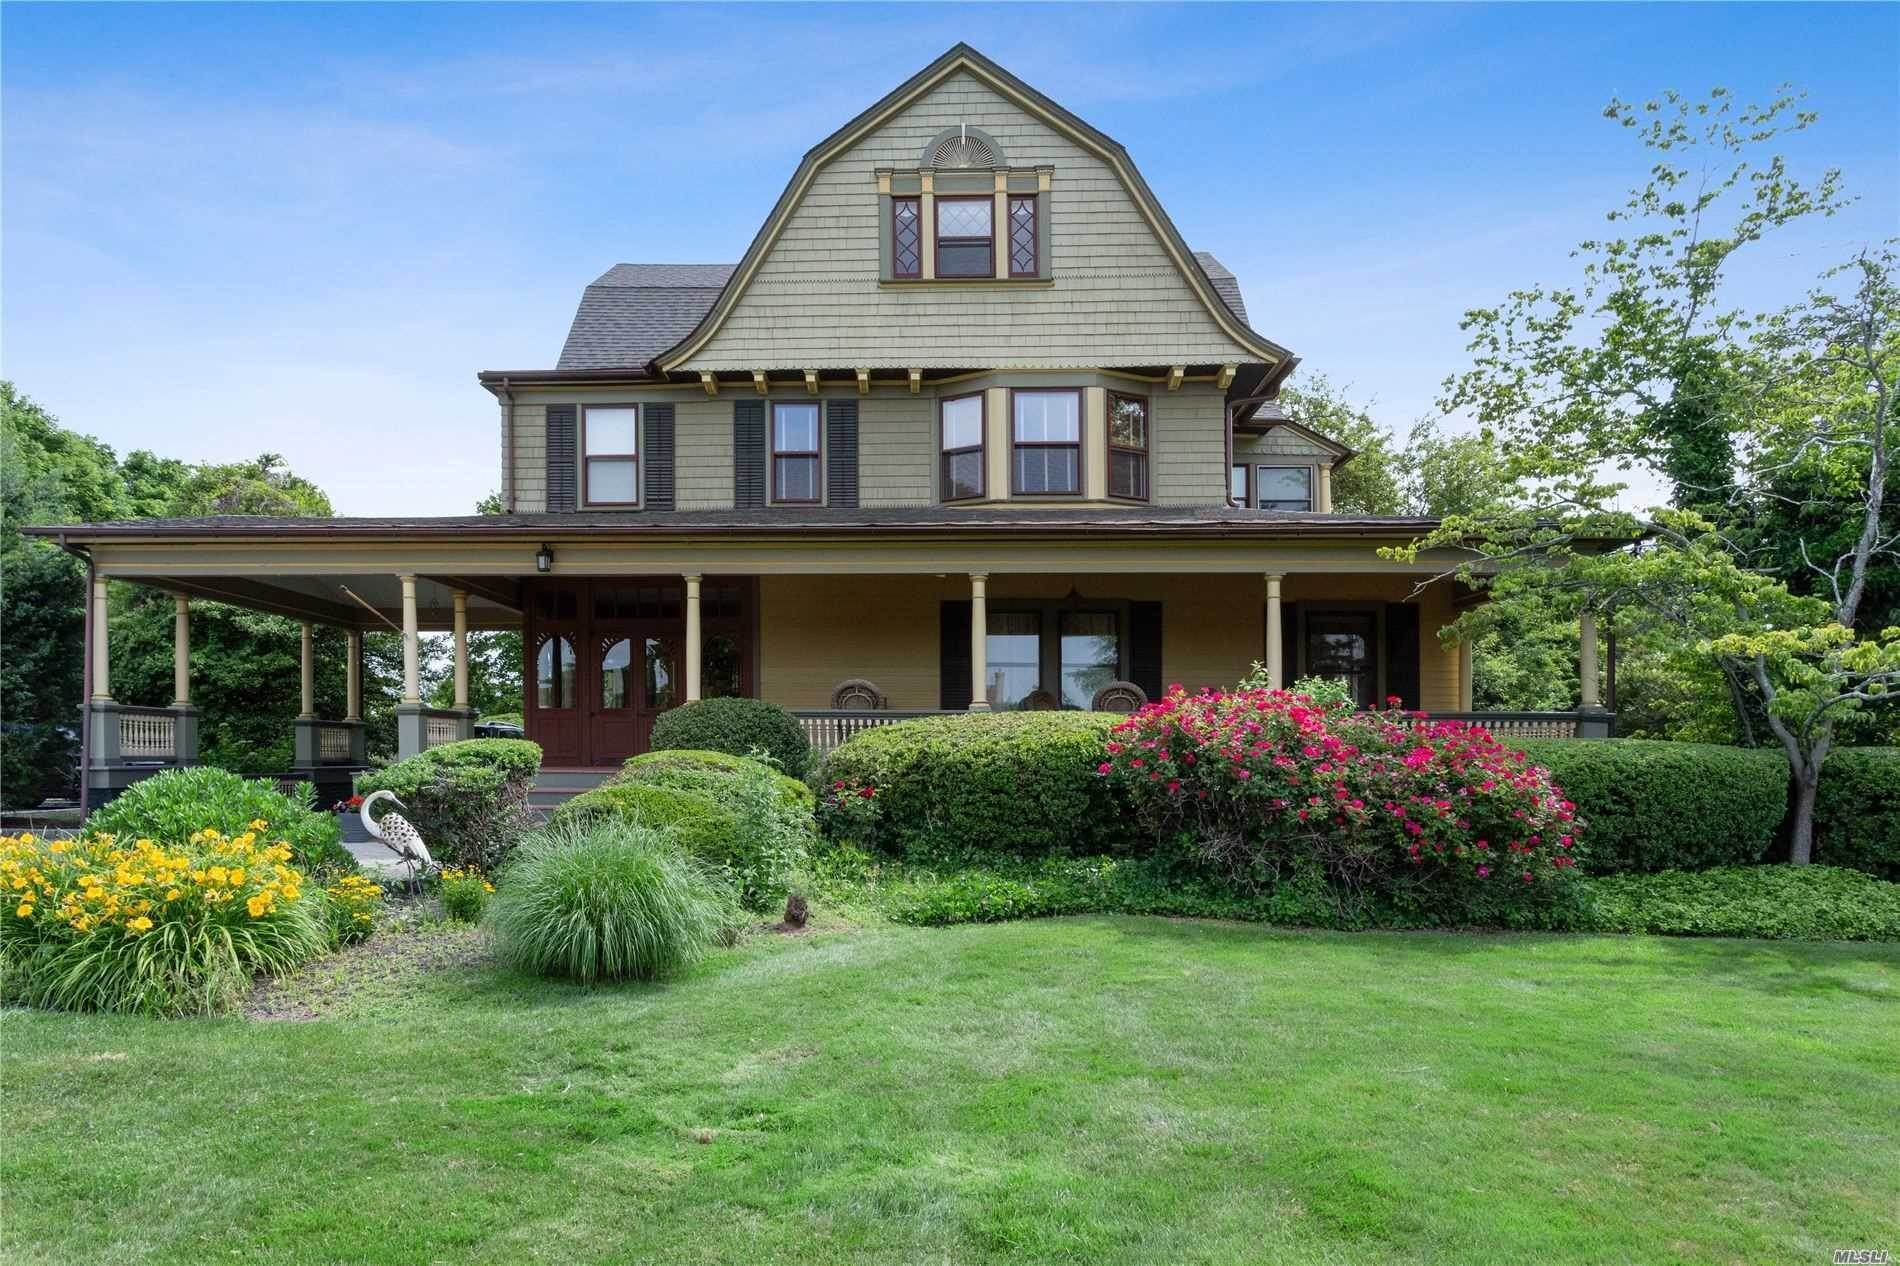 Residential for Sale at 75 Oak Neck Lane West Islip, New York 11795 United States